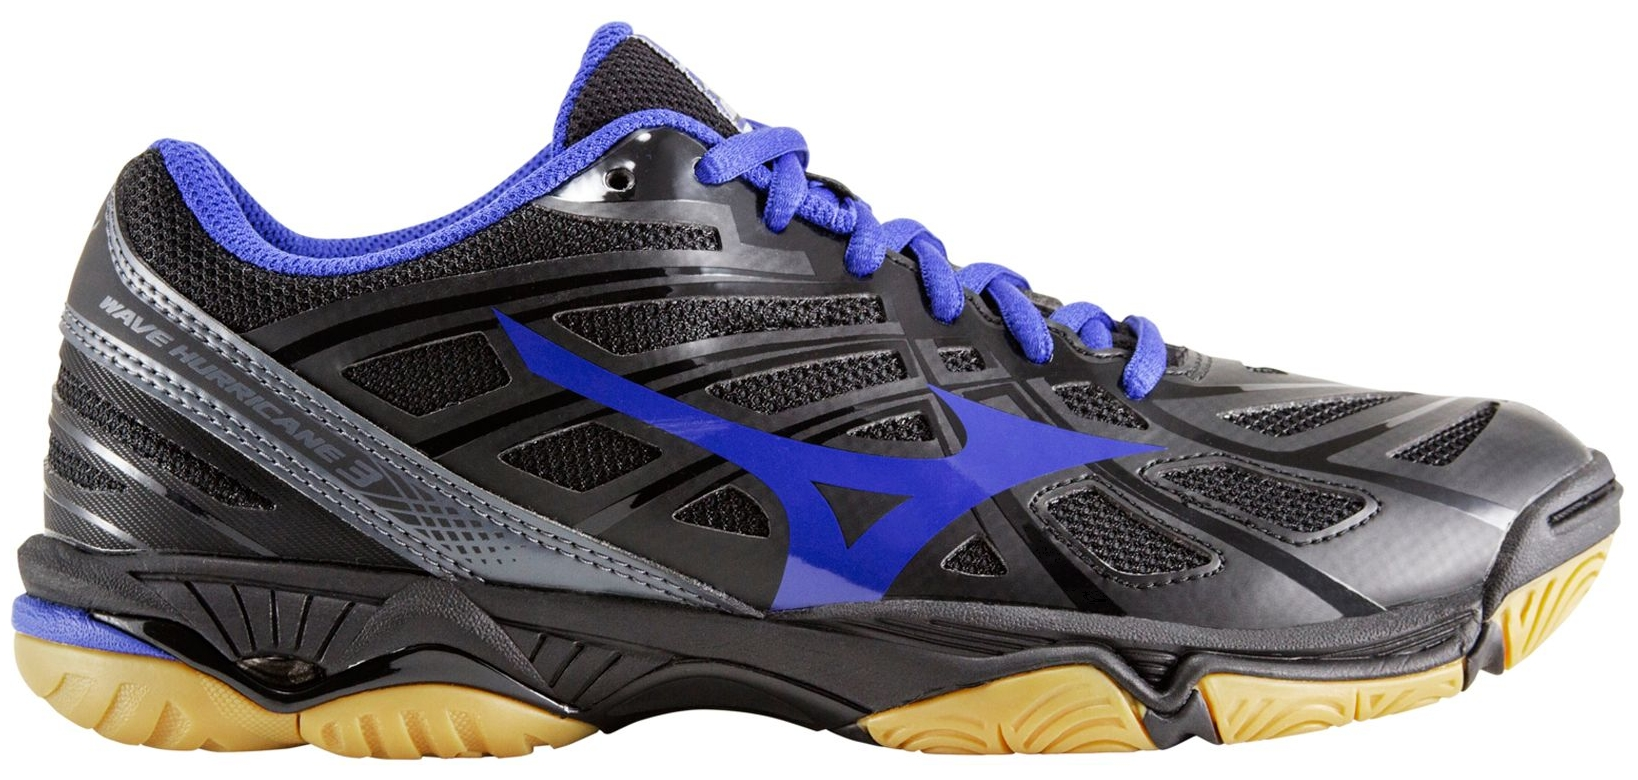 Mizuno Women's Wave Hurricane 3 Volleyball Shoes (Black Royal, 7.0) by Mizuno